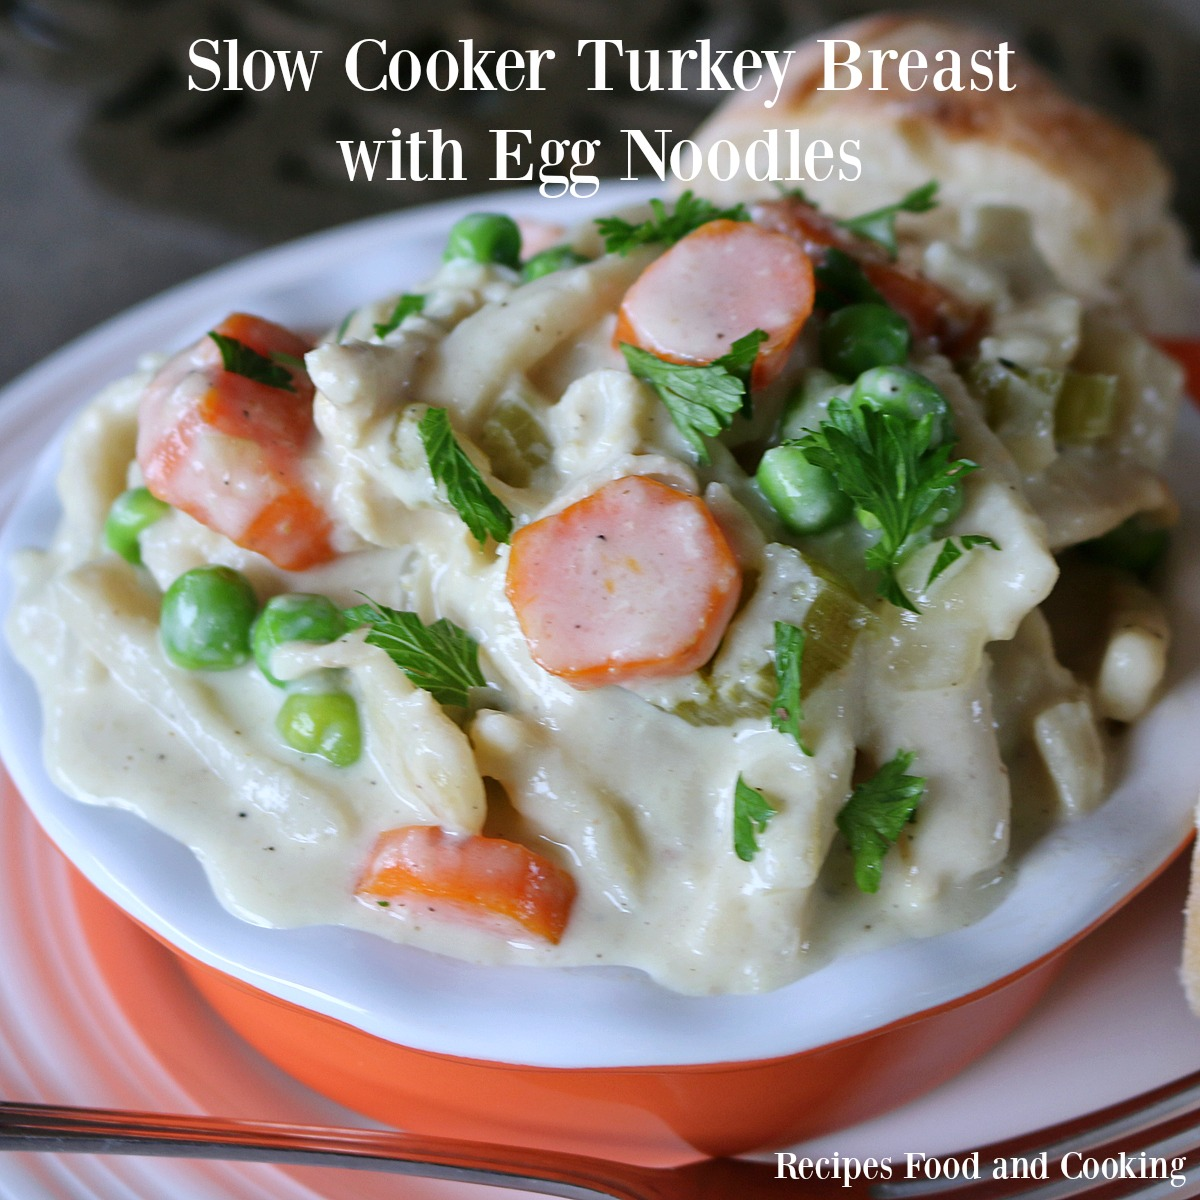 Slow Cooker Turkey Breast with Egg Noodles